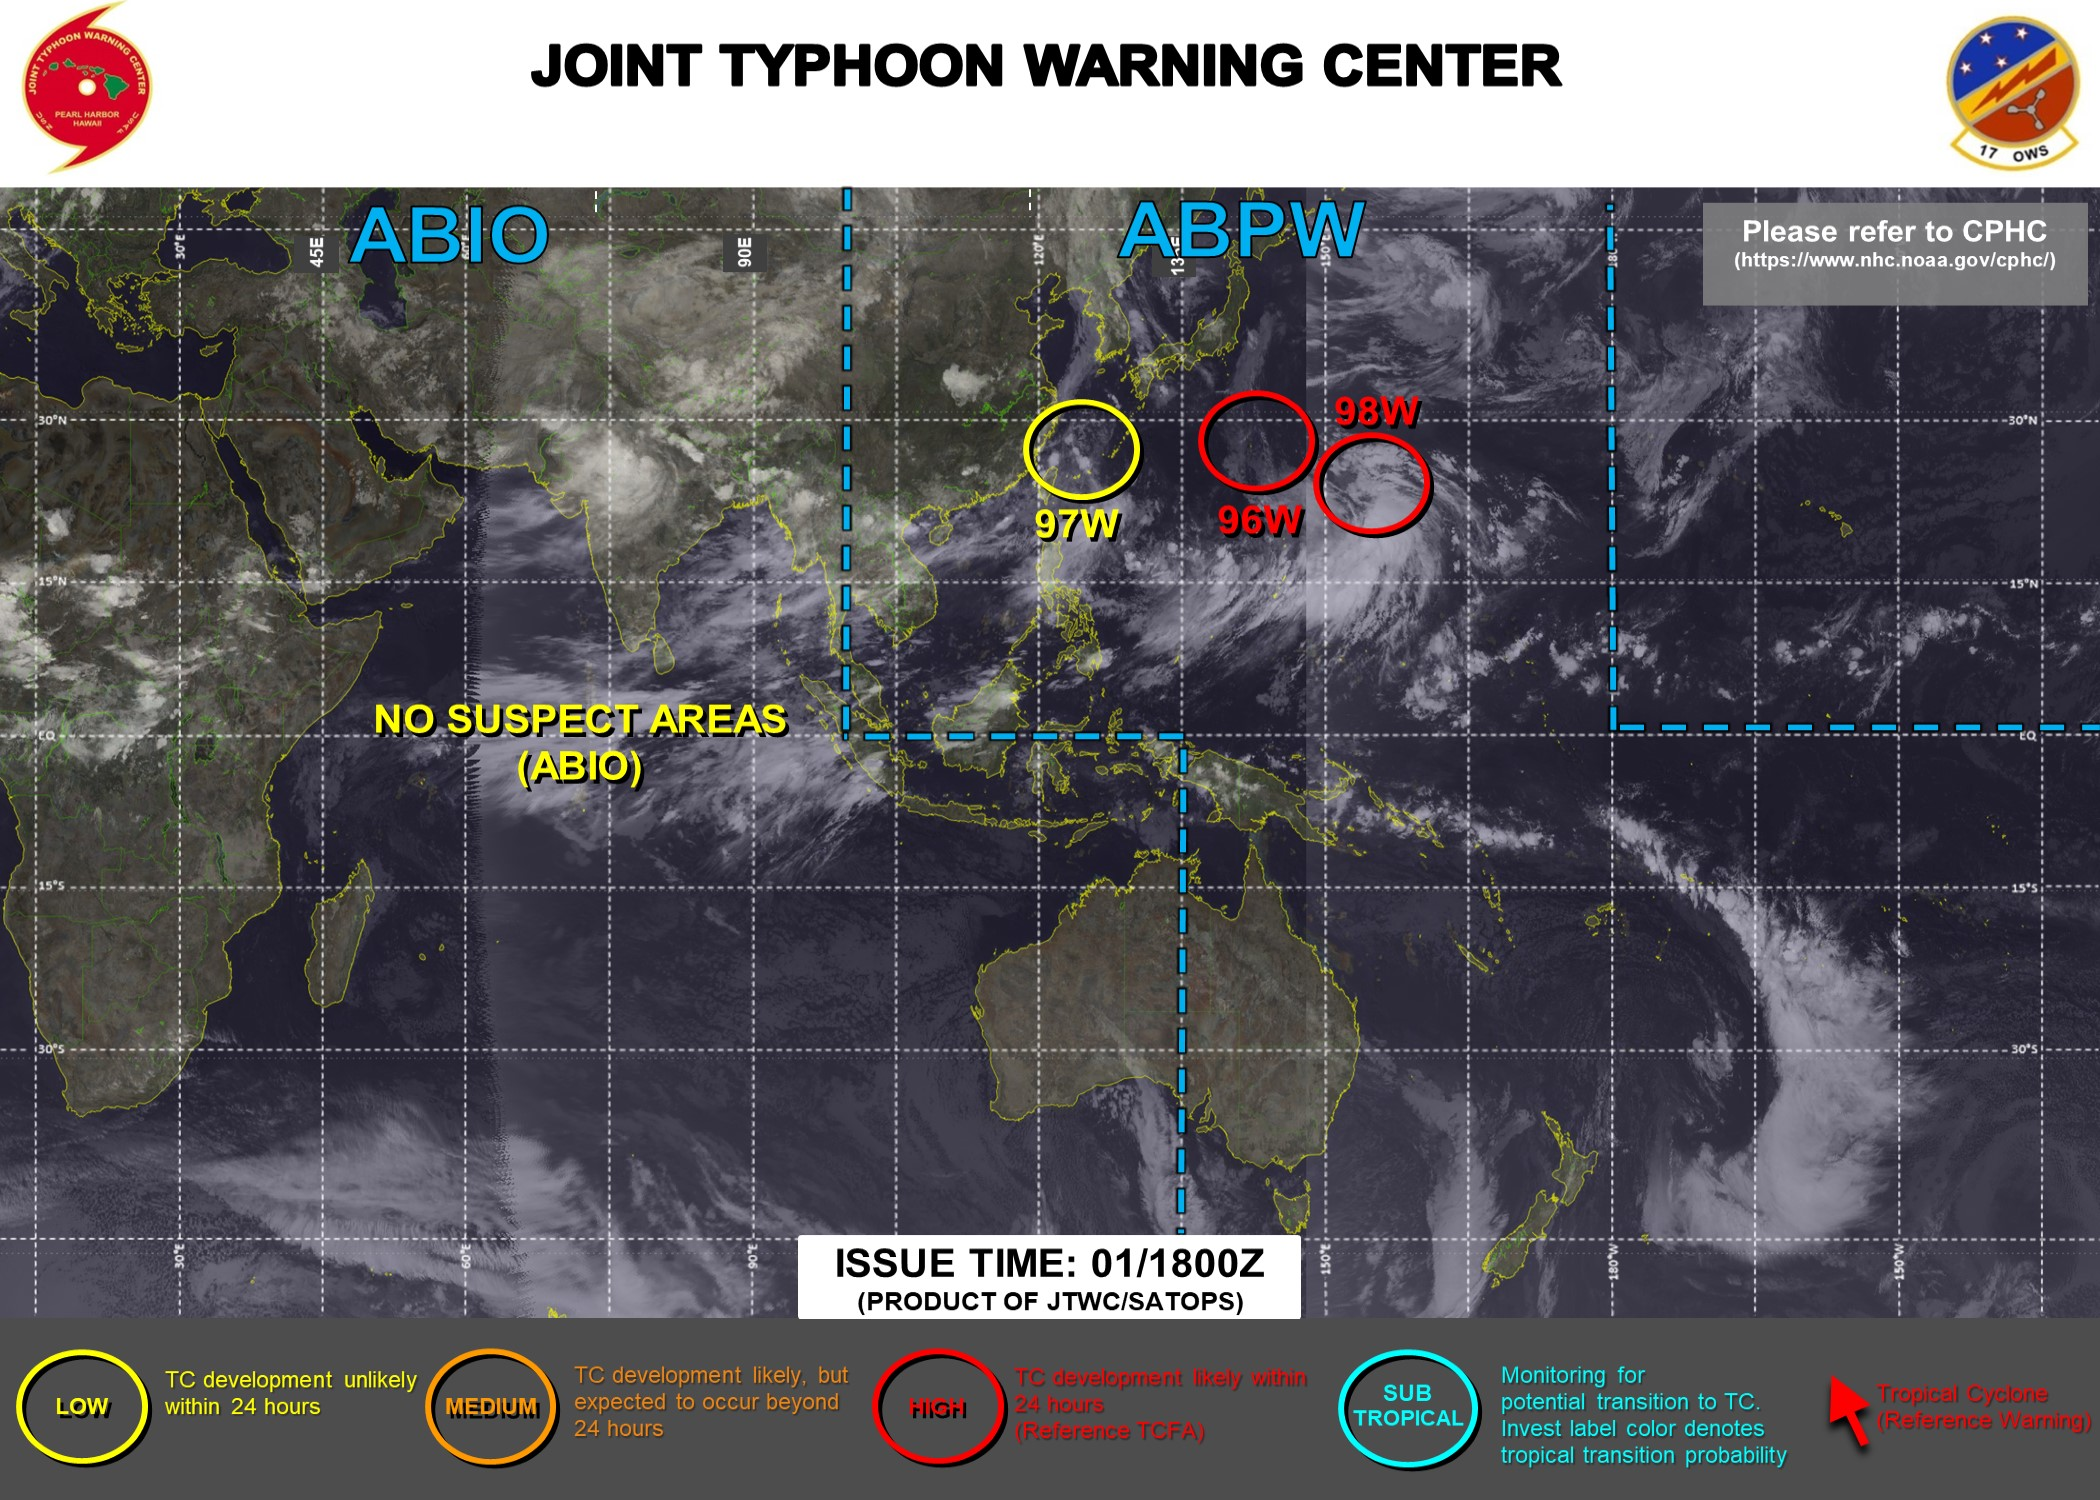 01/18UTC. A TROPICAL CYCLONE FORMATION ALERT ISSUED FOR BOTH INVEST 96W & INVEST 98W. BOTH AREAS HAVE HIGH CHANCES OF DEVELOPING AT LEAST 25KNOT WINDS NEAR THE CENTRER WITHIN 24HOURS. JTWC HAS BEEN ISSUING 3HOURLY SATELLITTE BULLETINS ON 96W.